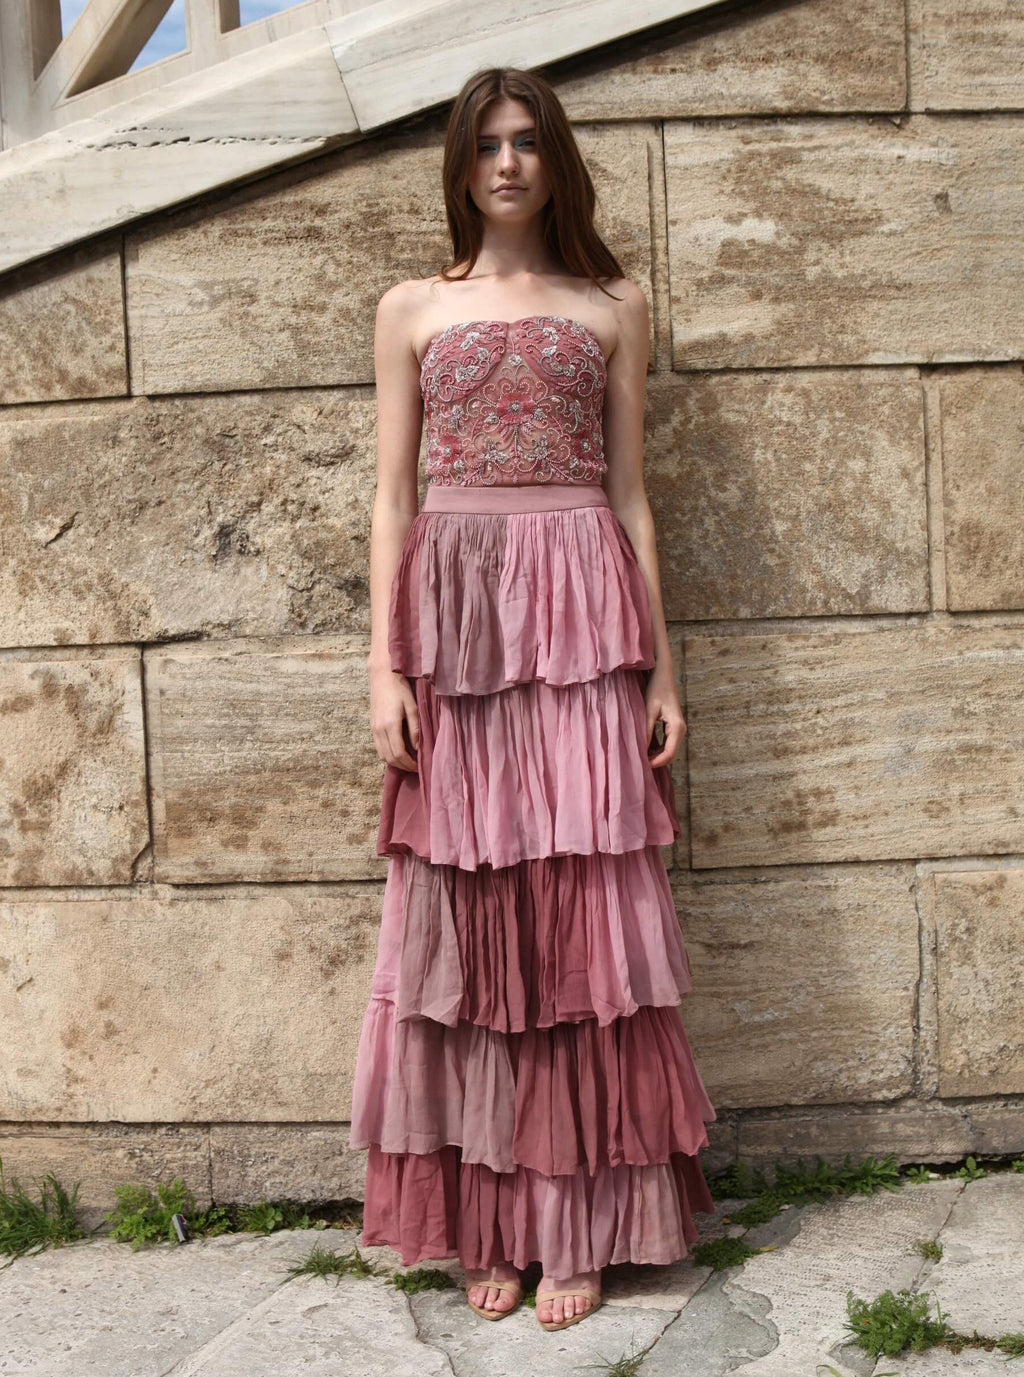 ROZINA ROSE PINK LAYERED SKIRT WITH CORSET TOP